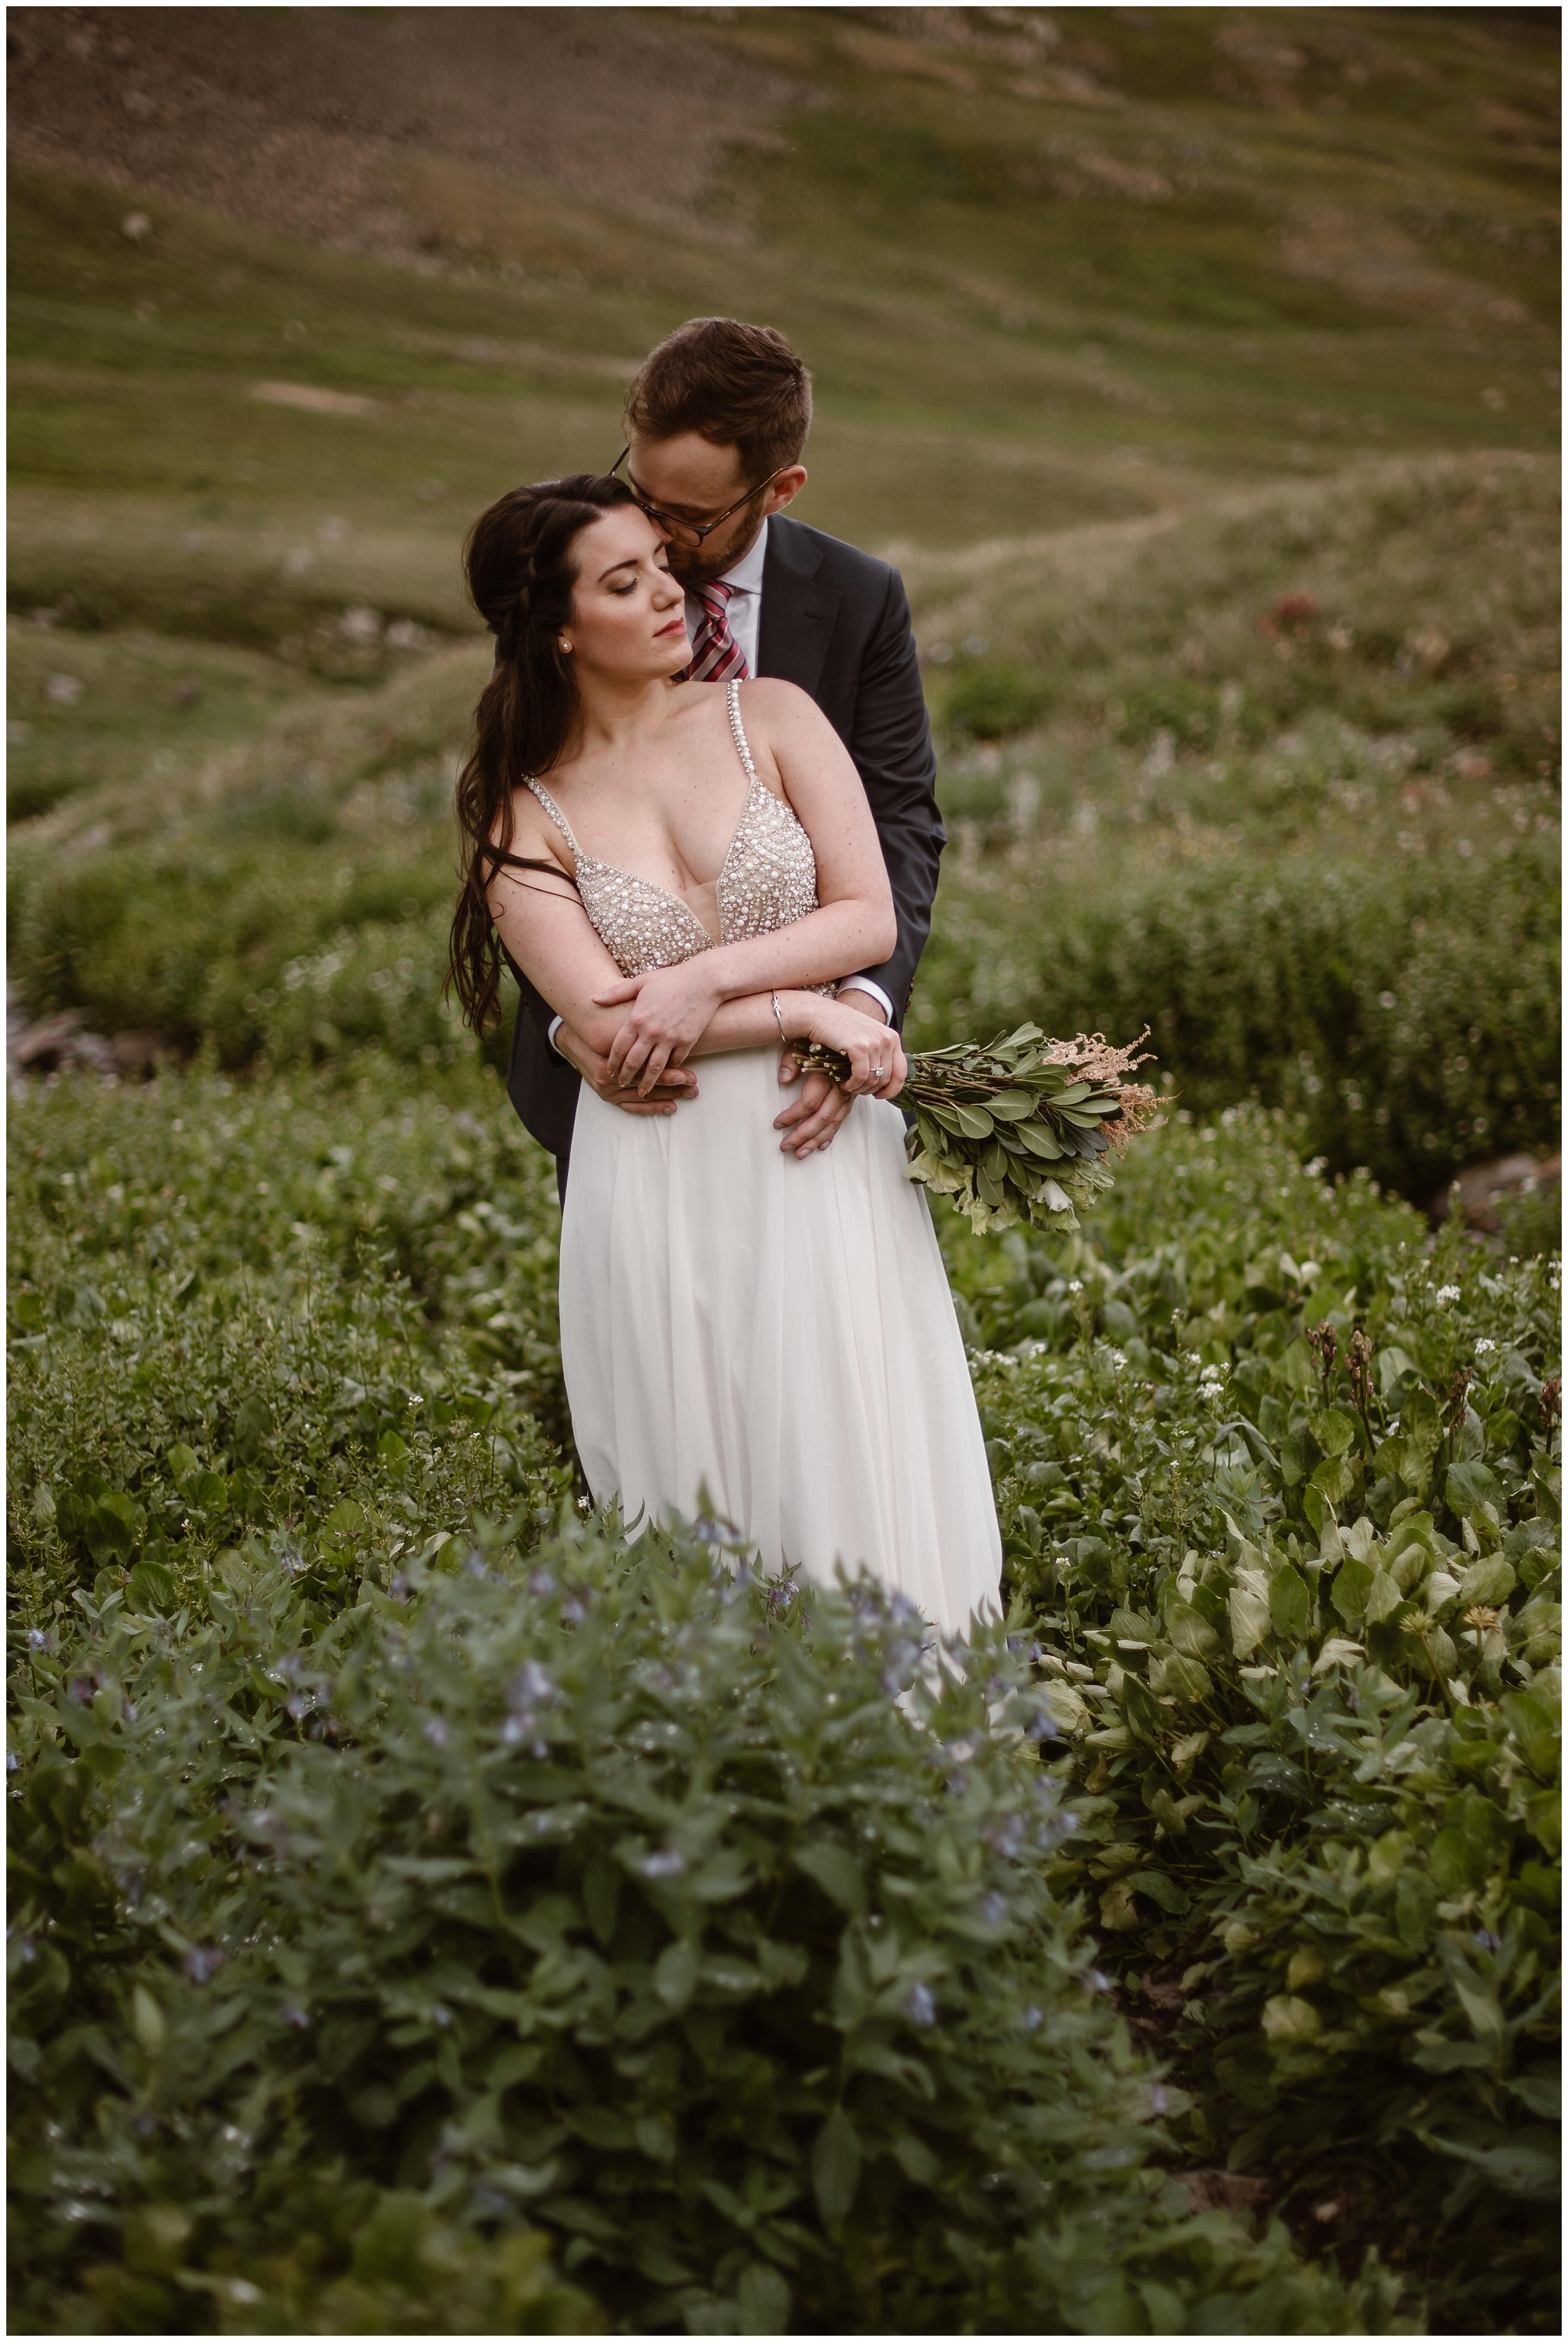 The bride and groom, Katie and Logan, stand in a green meadow surrounded by wildflowers after their elopement ceremony. Small simple wedding ideas like Kaite and Logan's typically involve couples traveling to spots for destination elopements. In Katie and Logan's case, they chose a location that required an adventure Jeep for off road driving to their secluded spot.